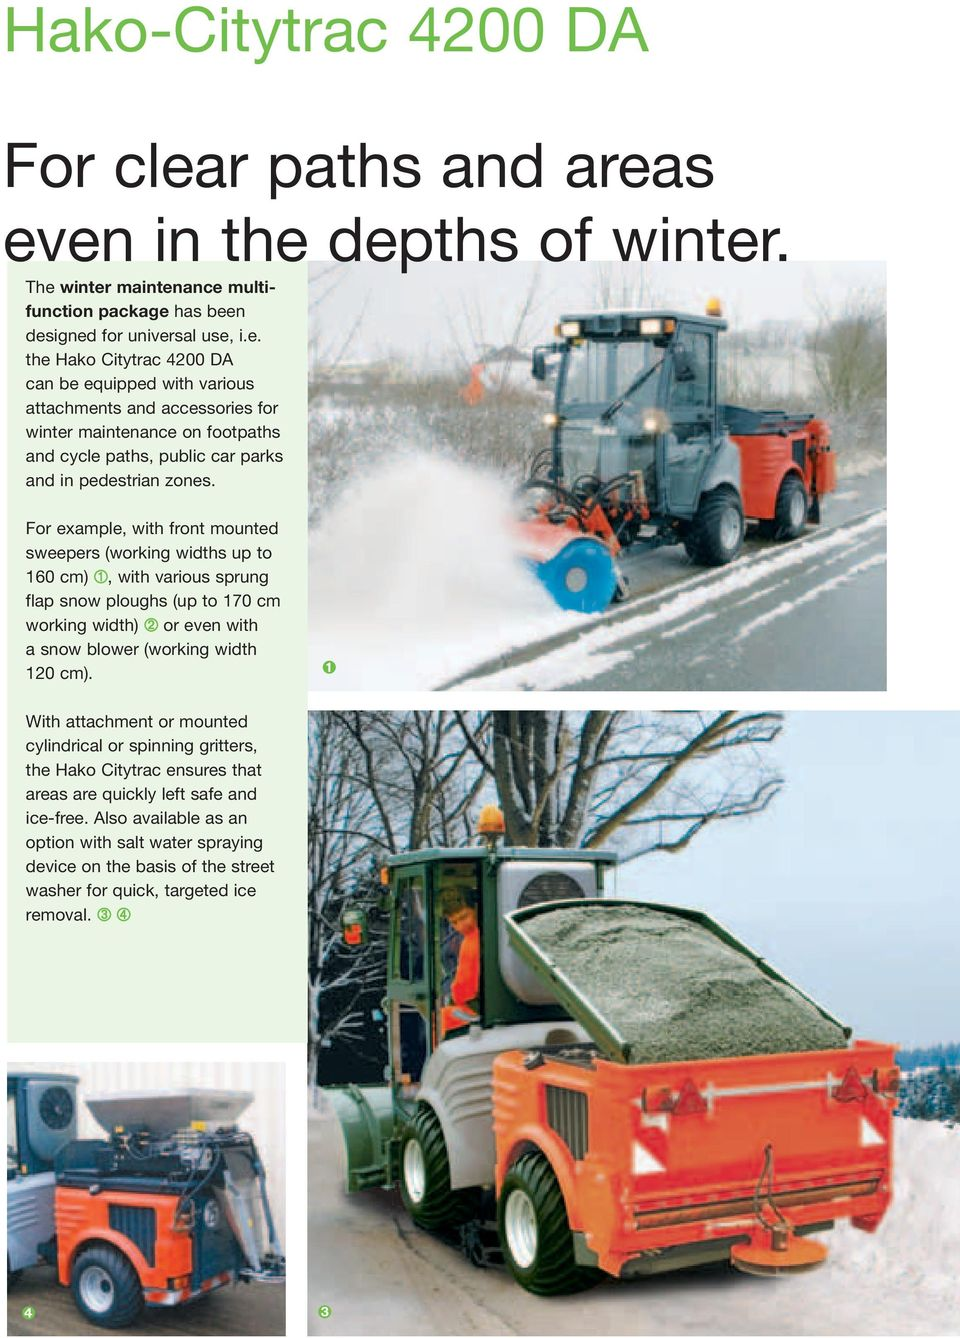 ➊ With attachment or mounted cylindrical or spinning gritters, the Hako Citytrac ensures that areas are quickly left safe and ice-free.